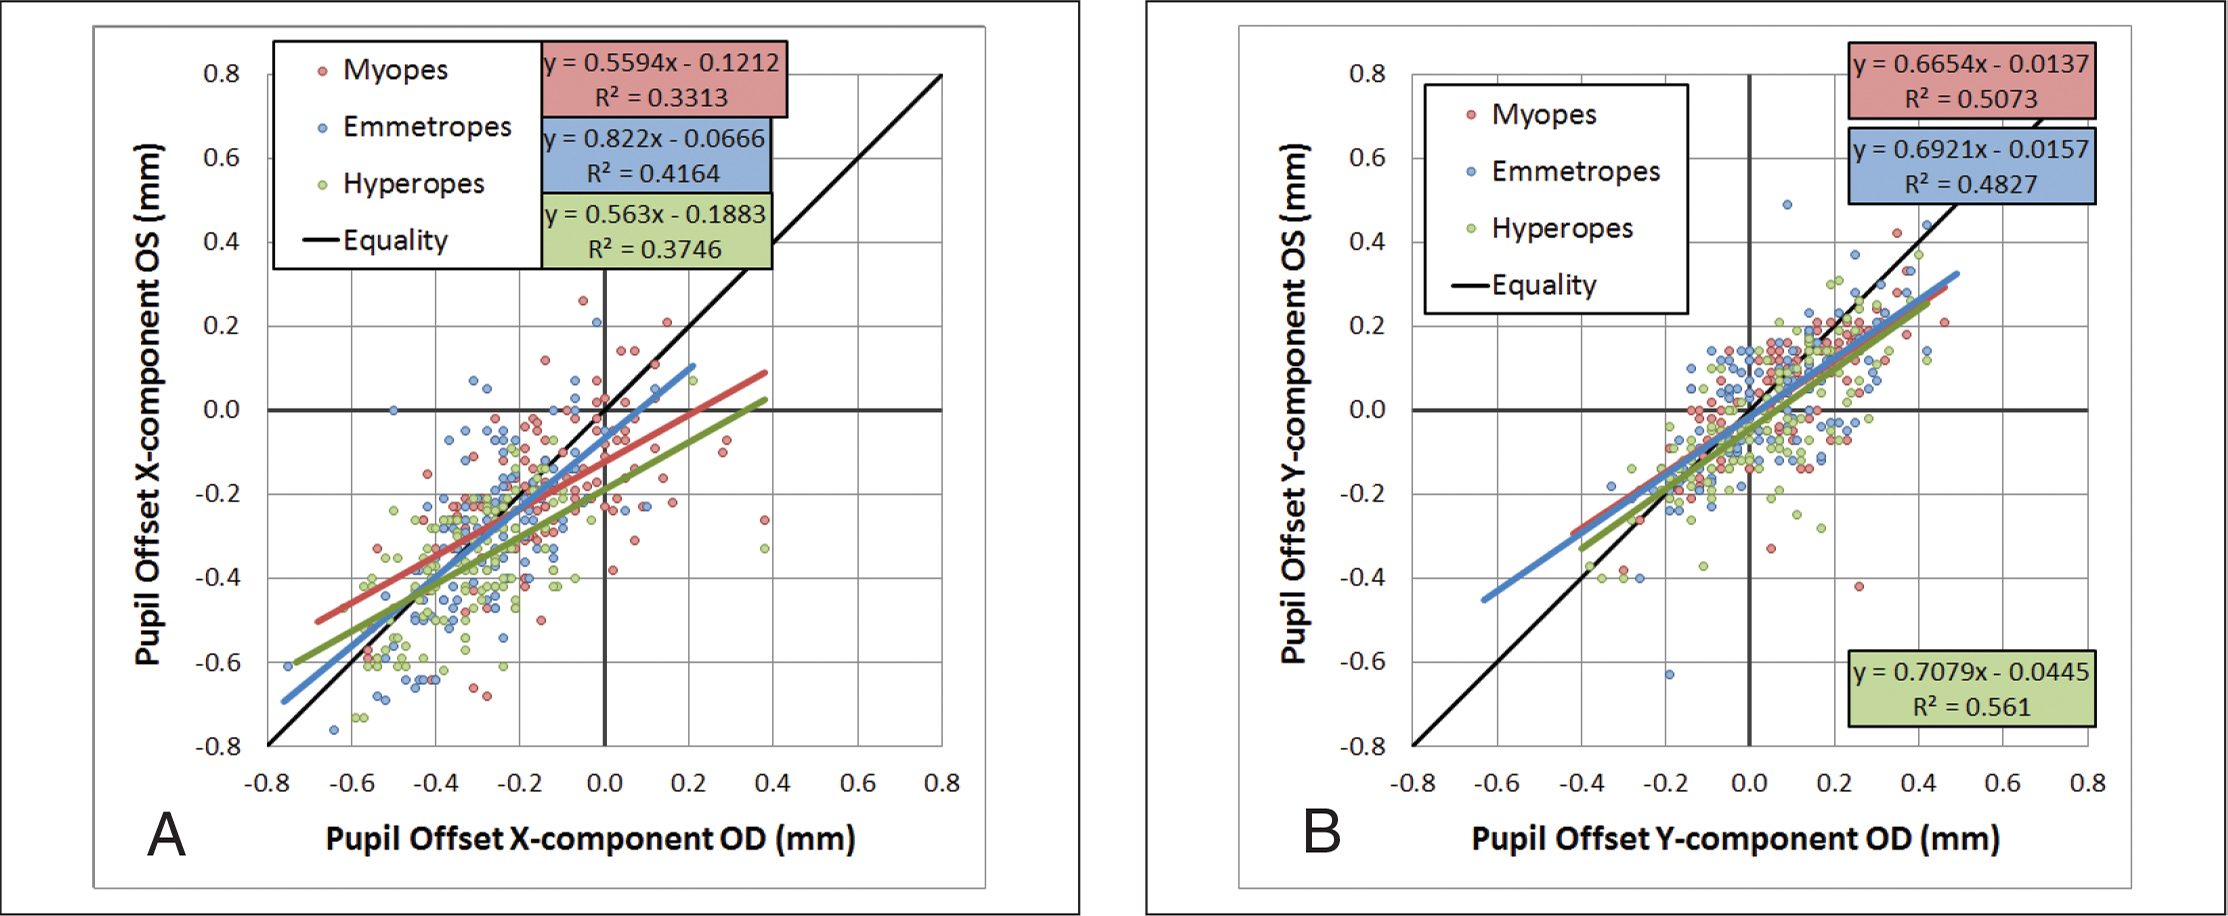 Pupil offset comparison between right (OD) and left (OS) eyes for the (A) myopic, (B) emmetropic, and (C) hyperopic groups. The red line represents a standard linear regression. The purple line represents the zero intercept regression line and shows symmetry in pupil offset between right and left eyes in the myopic and emmetropic groups but 0.03 mm larger (P = .001) in left eyes for the hyperopic group.